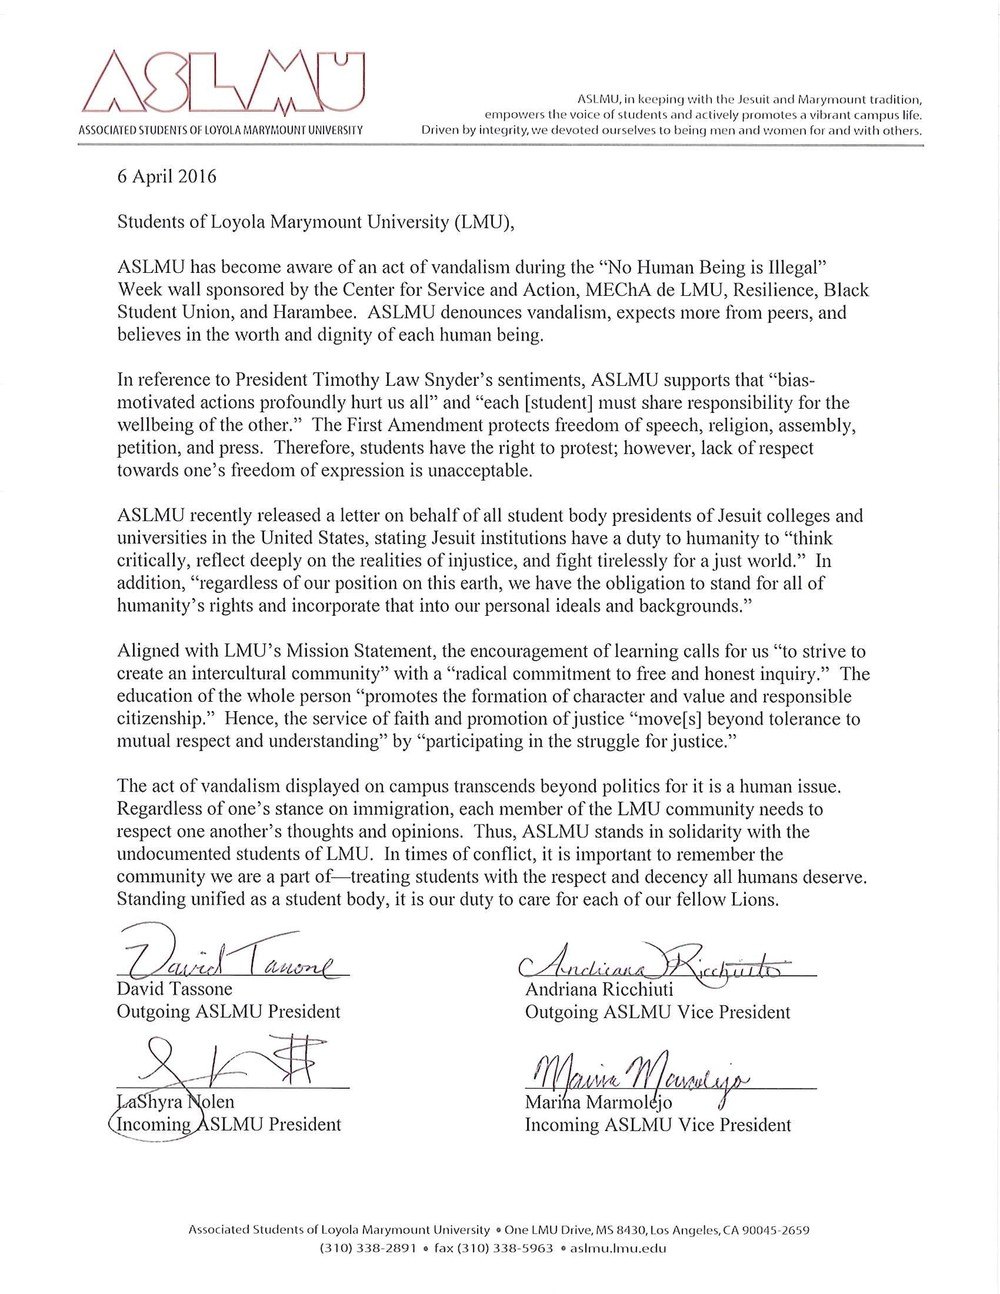 ASLMU Statement in Response to Vandalization